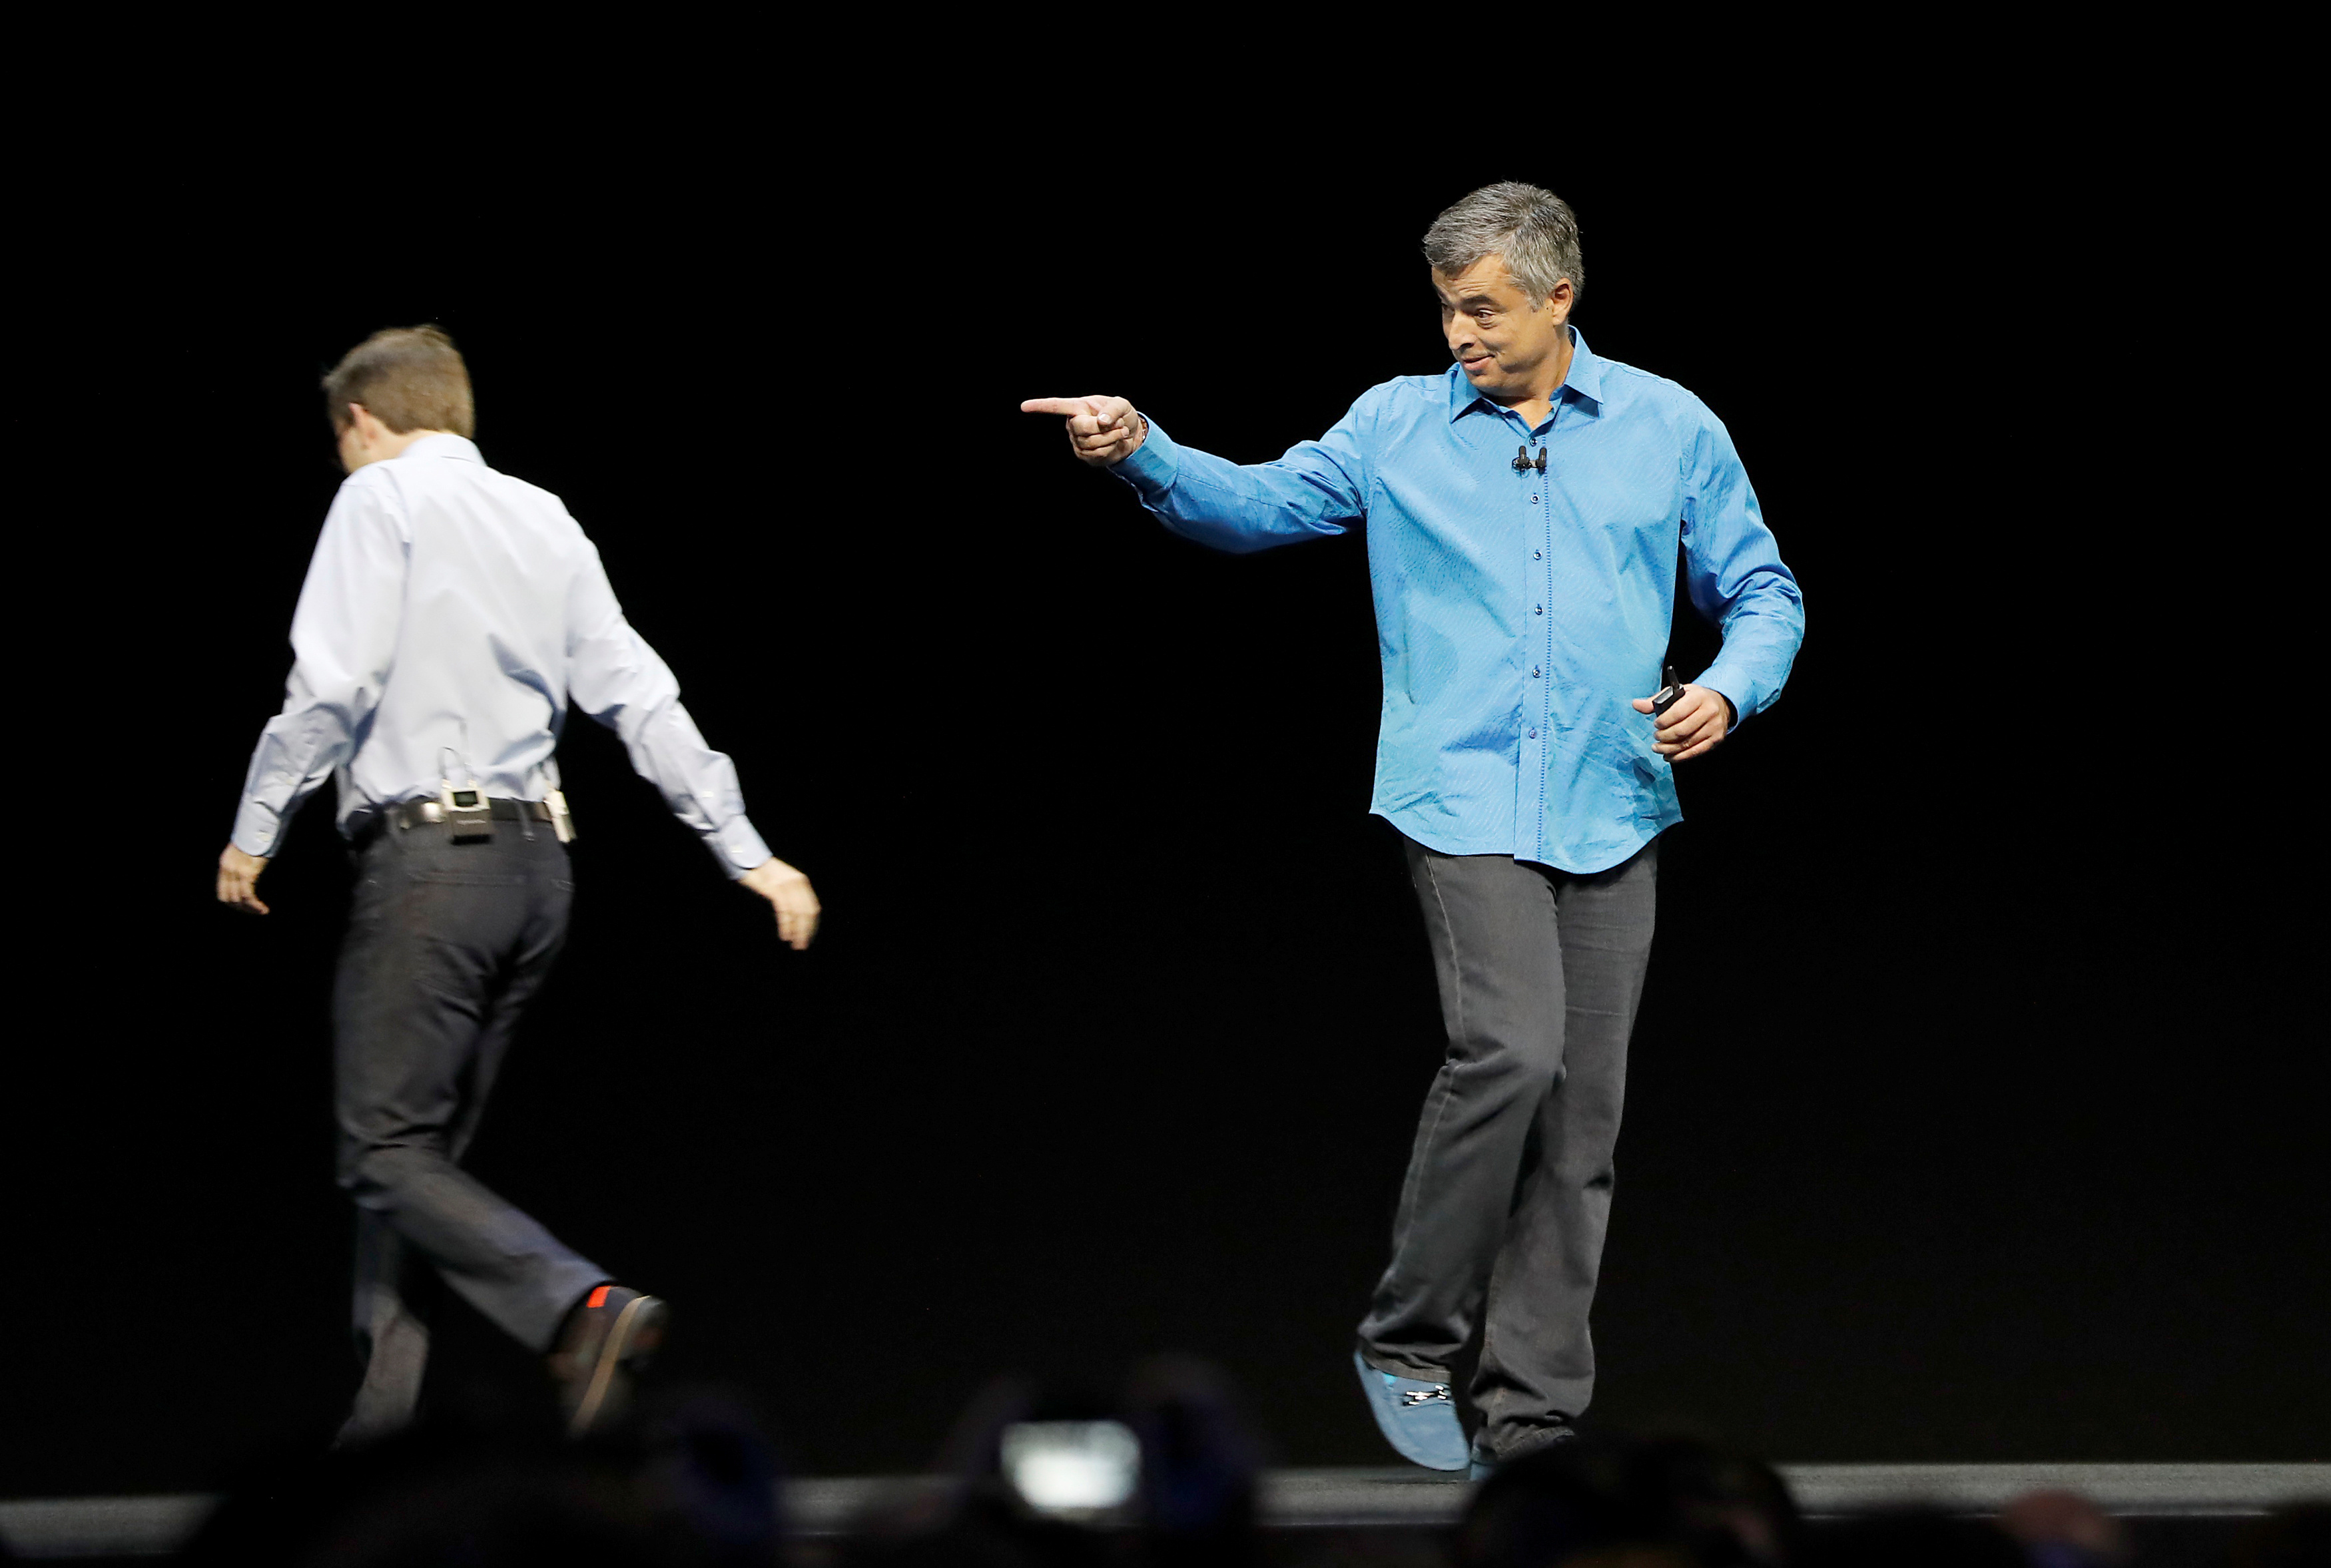 Eddy Cue takes the stage to discuss Apple tvOS at the company's World Wide Developers Conference in San Francisco, California